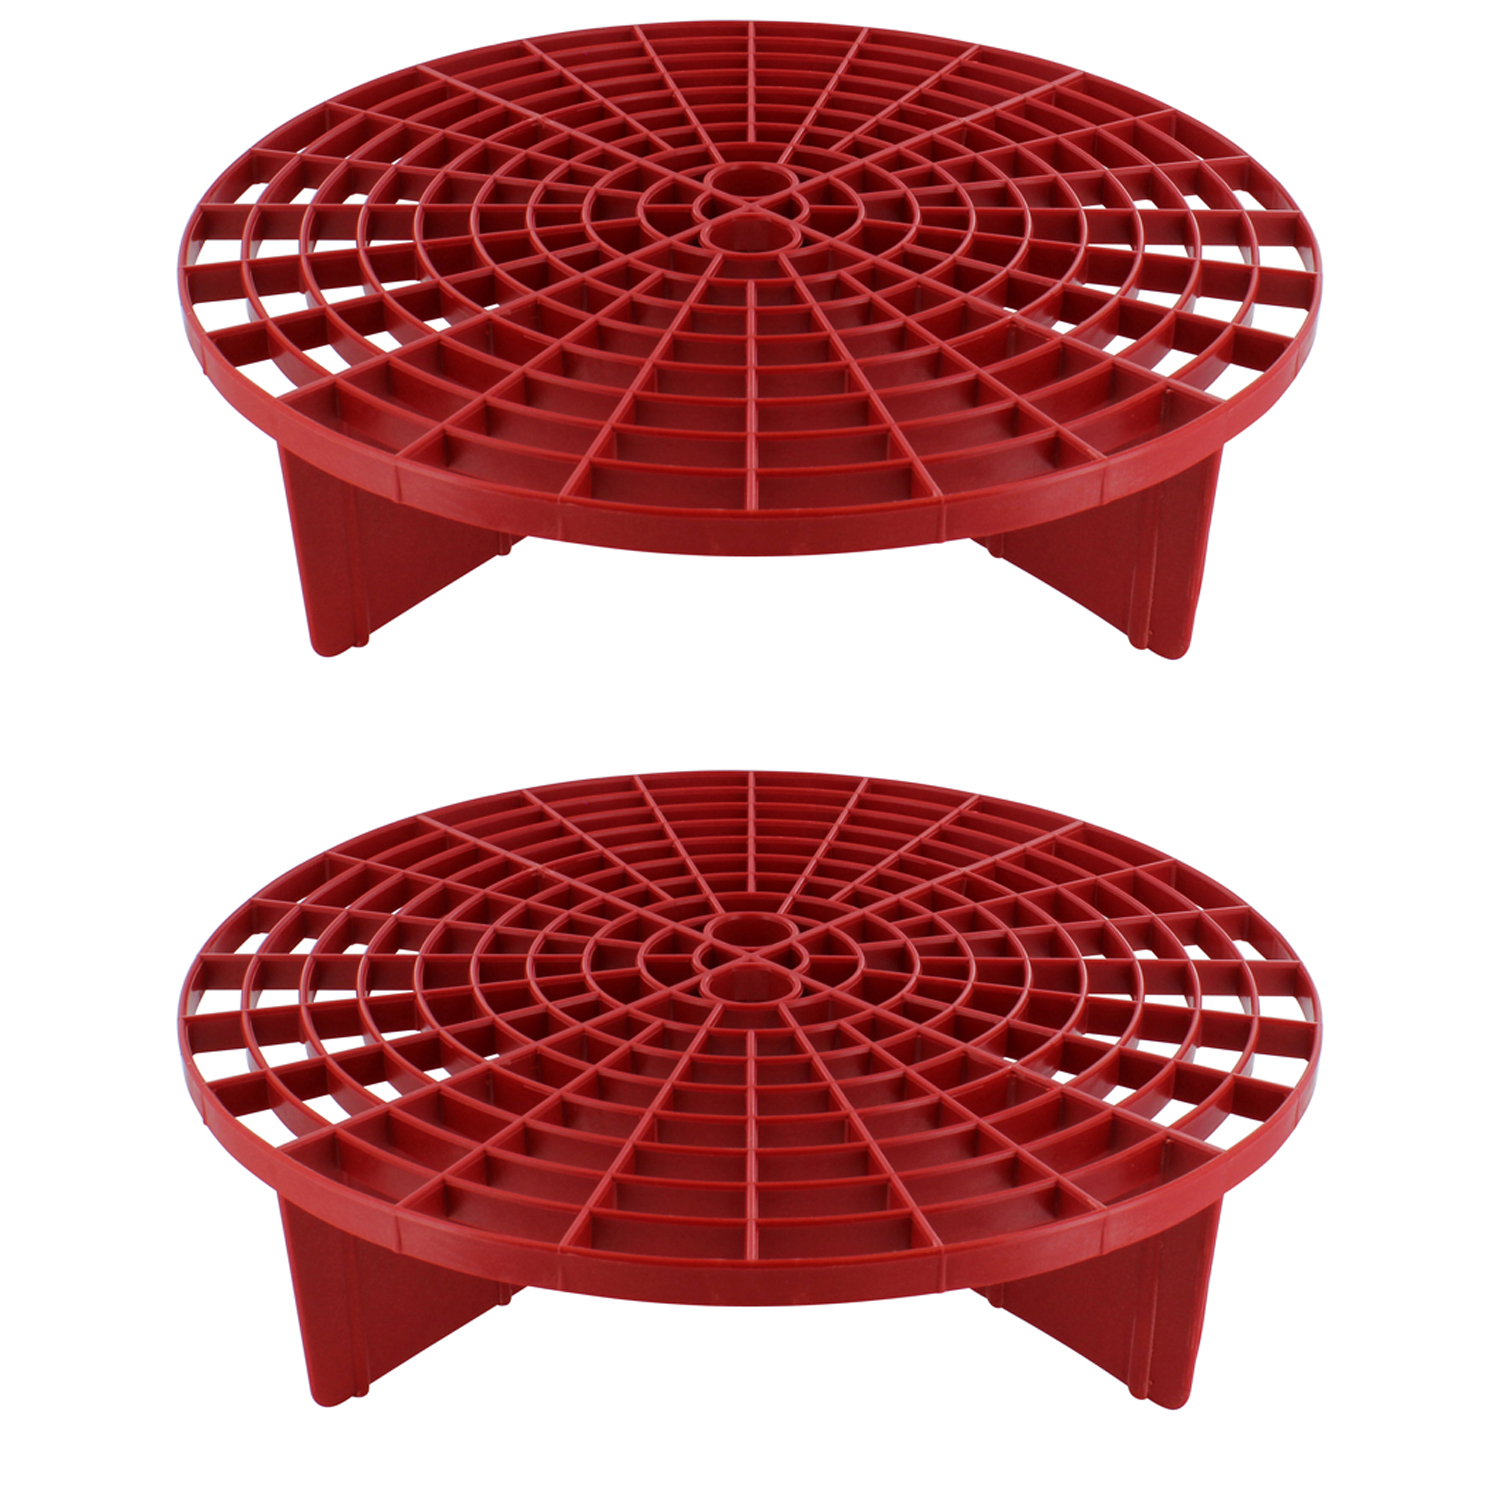 The Grit Guard Insert - Red (2 Pack)